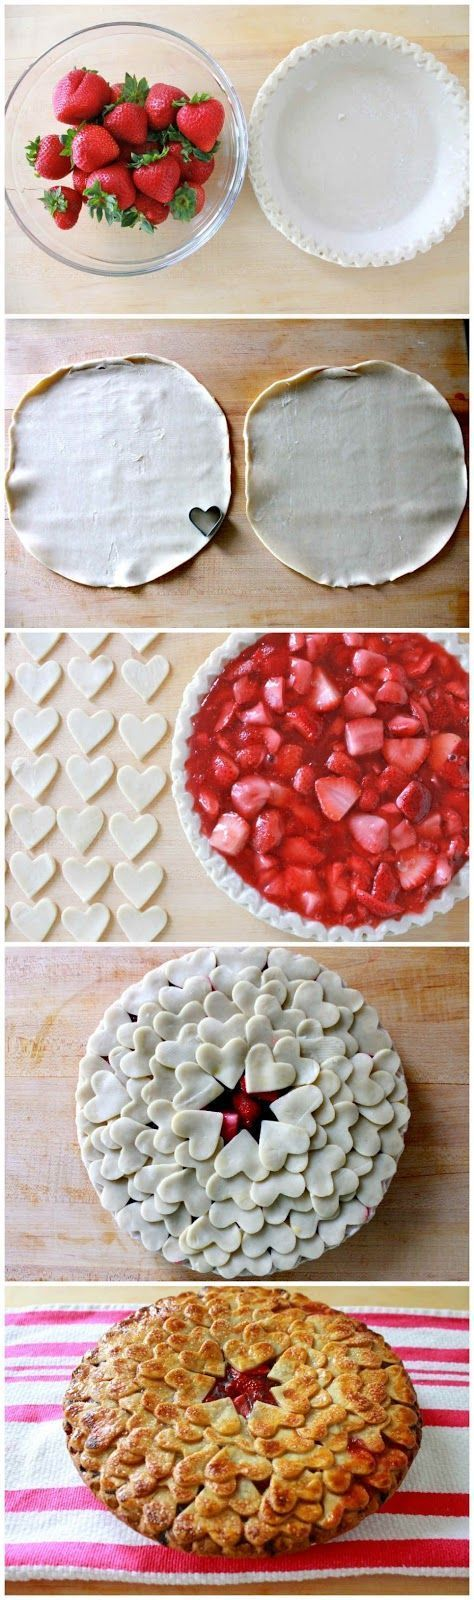 Strawberry Heart Pie | COUNTER FOOD | re-pinned by http://www.cupkes.com/